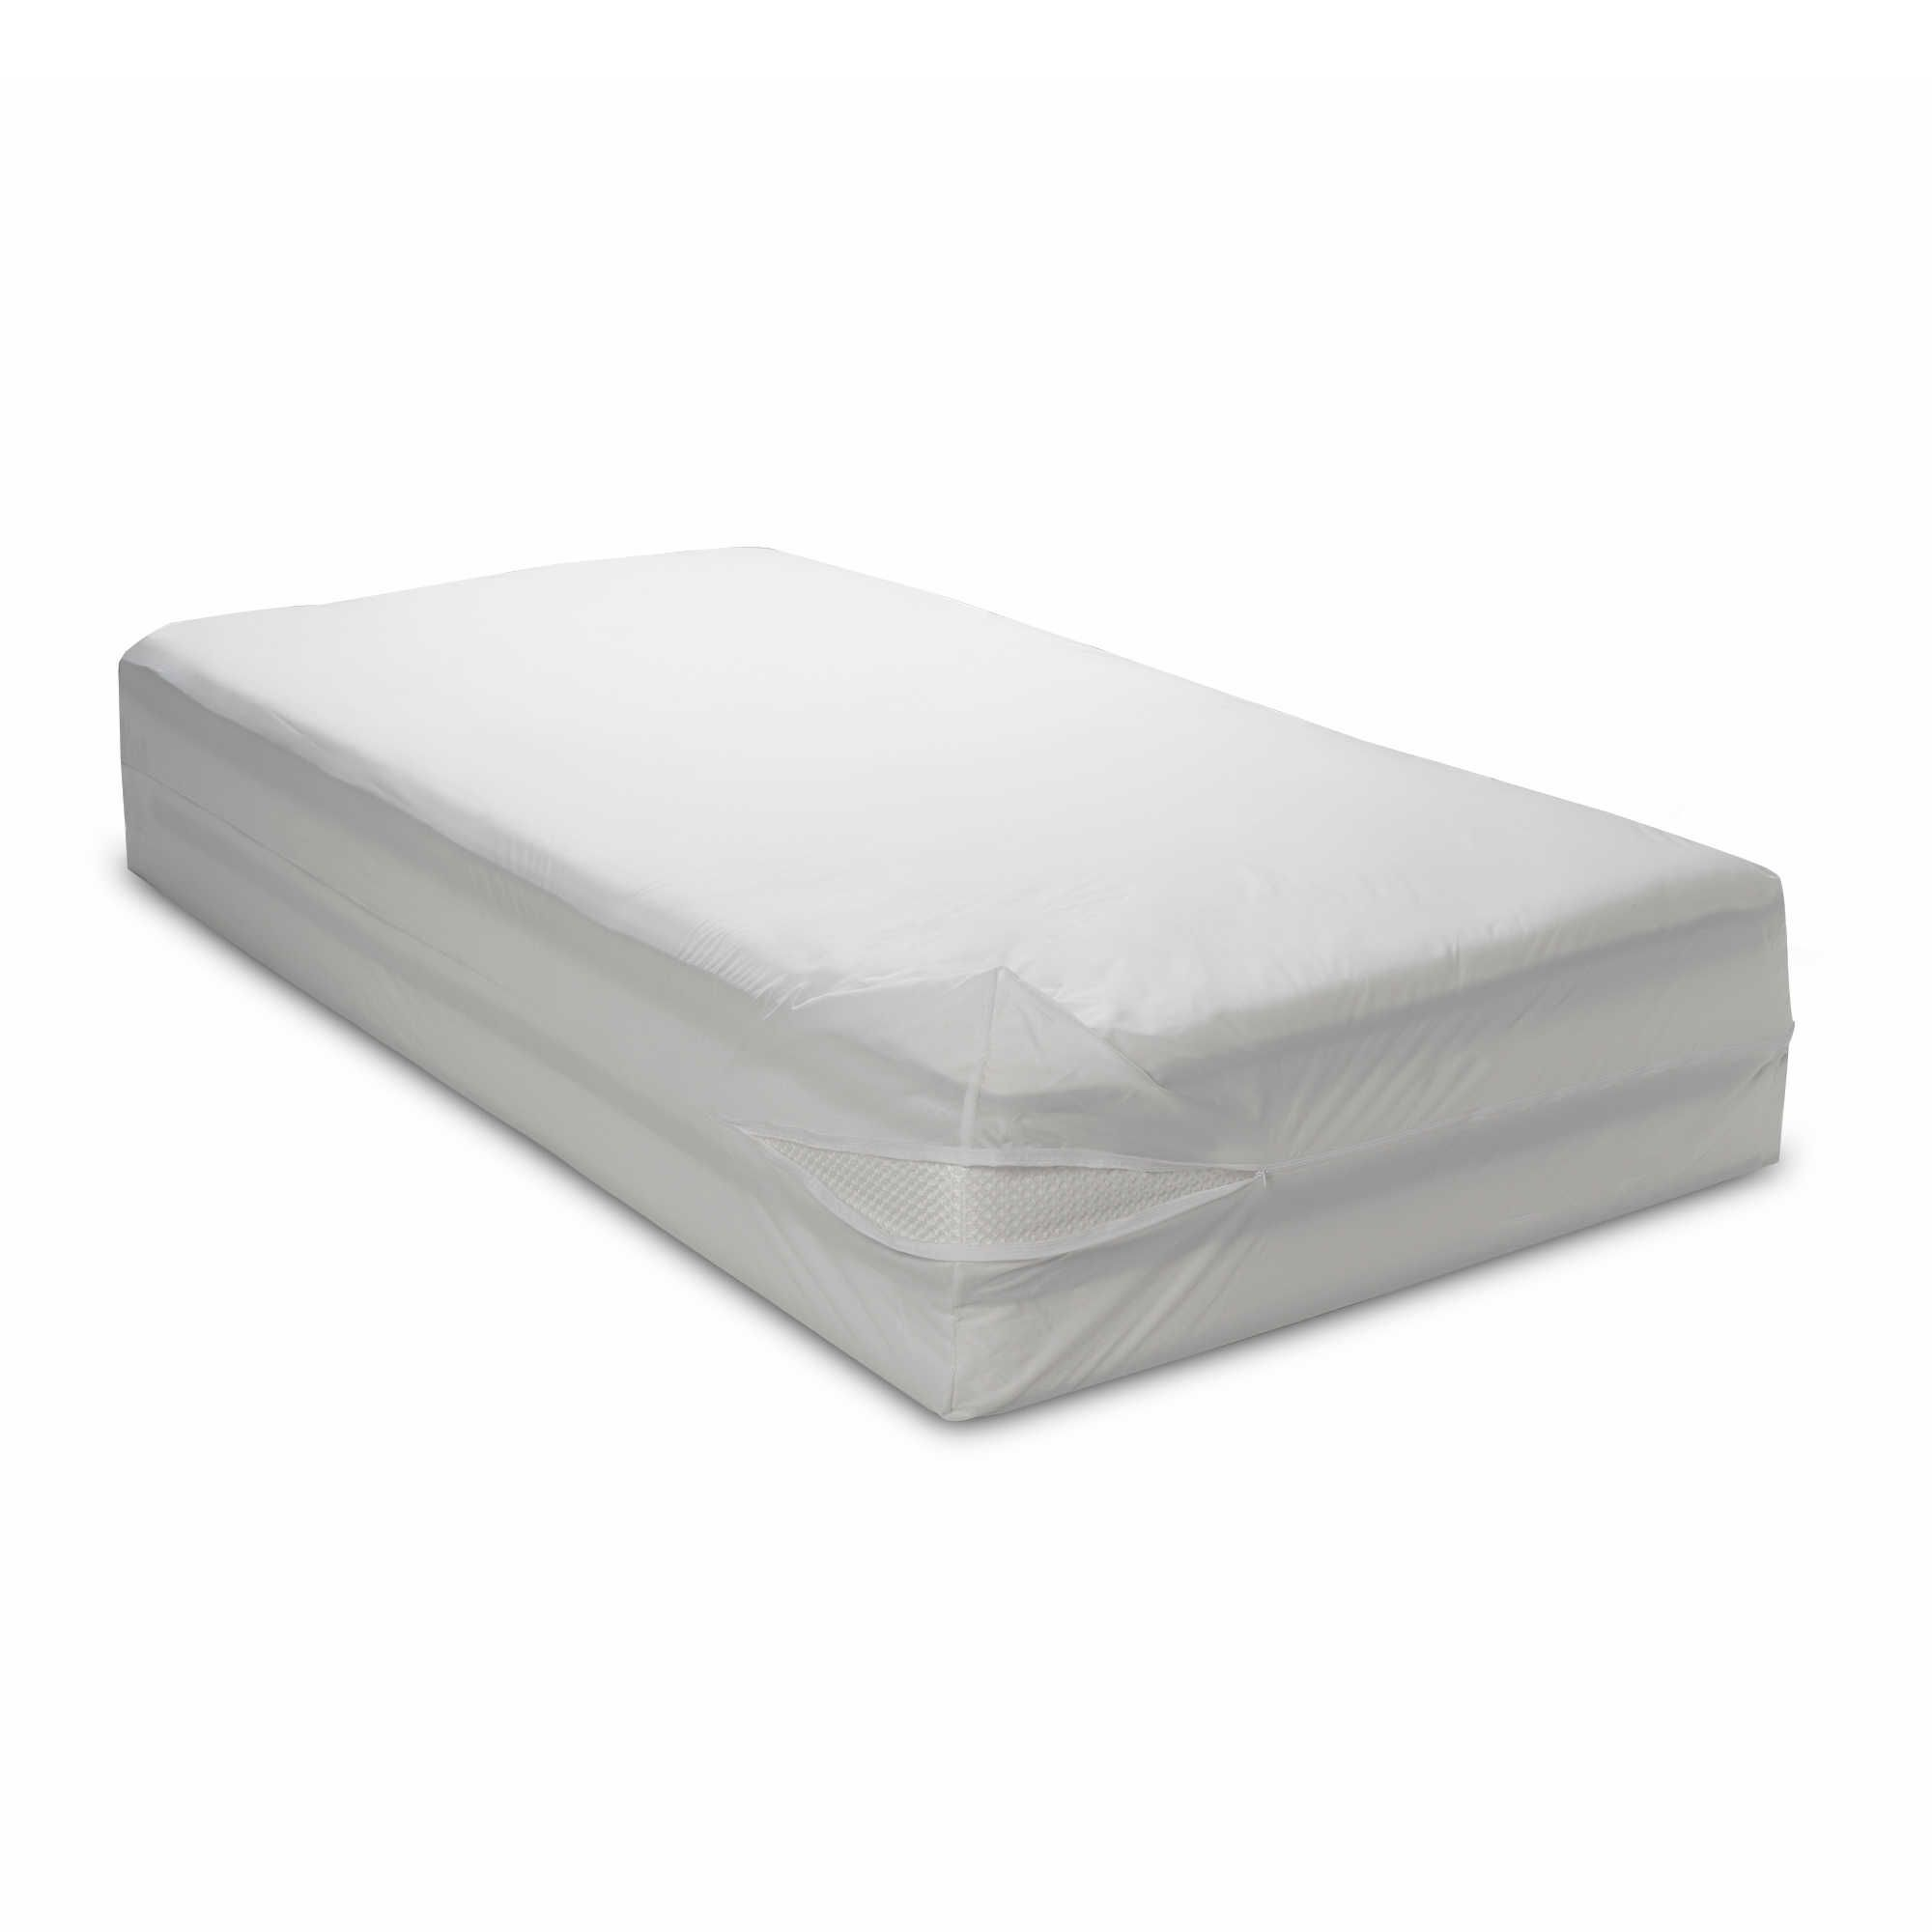 Water Resistant Washable 16 Bed Bug Blocker Zippered Mattress Cover Protector Walmart Com In 2020 Mattress Covers Mattress Bed Bugs